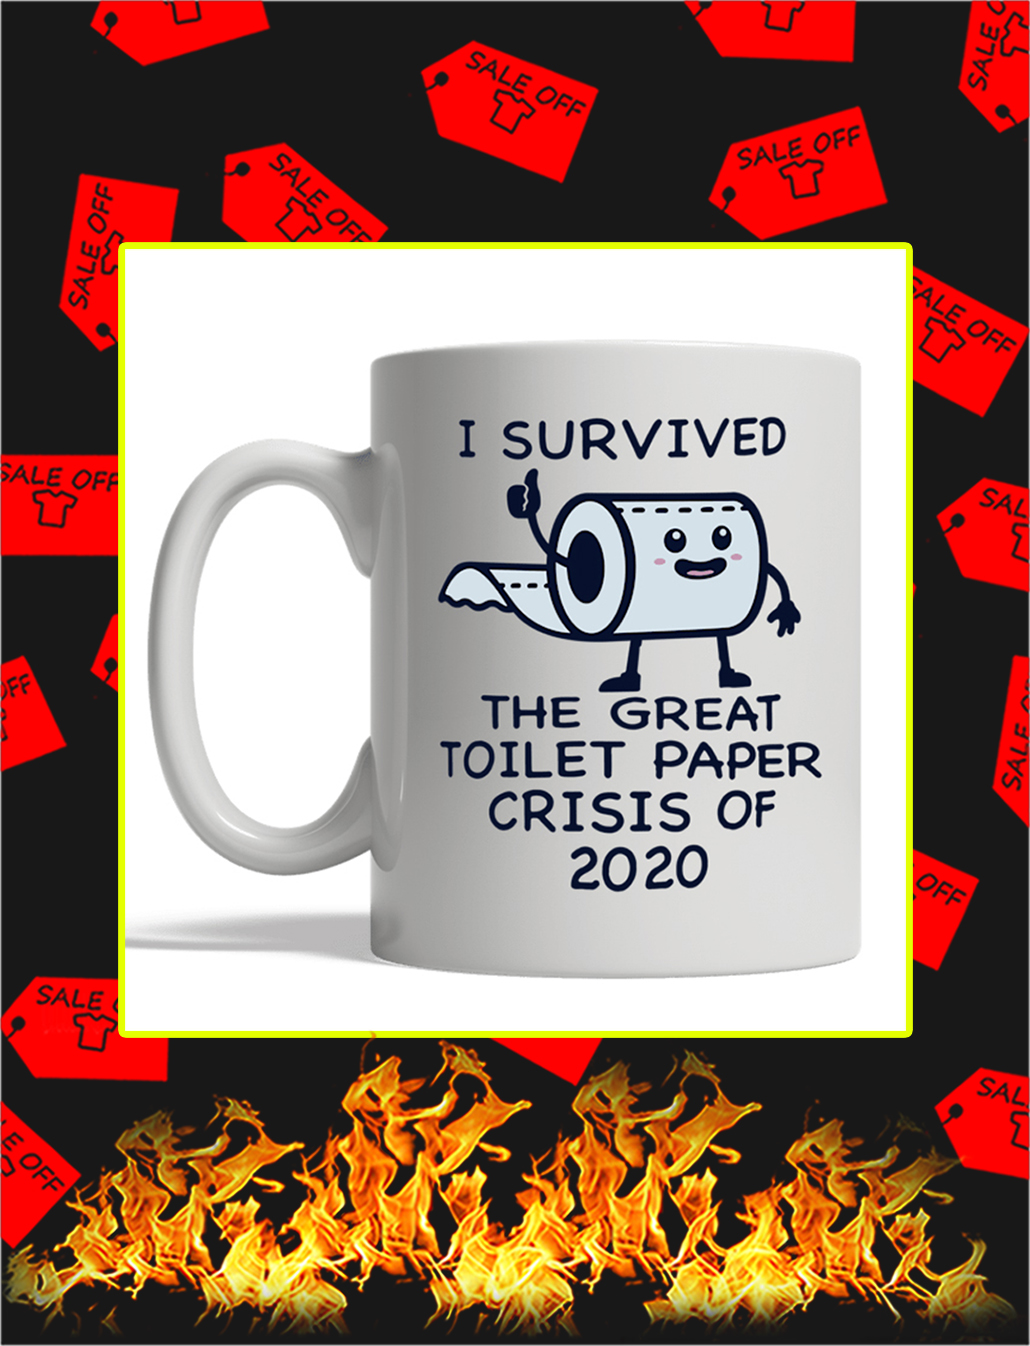 I Survived The Great Toilet Paper Crisis Of 2020 Mug- white